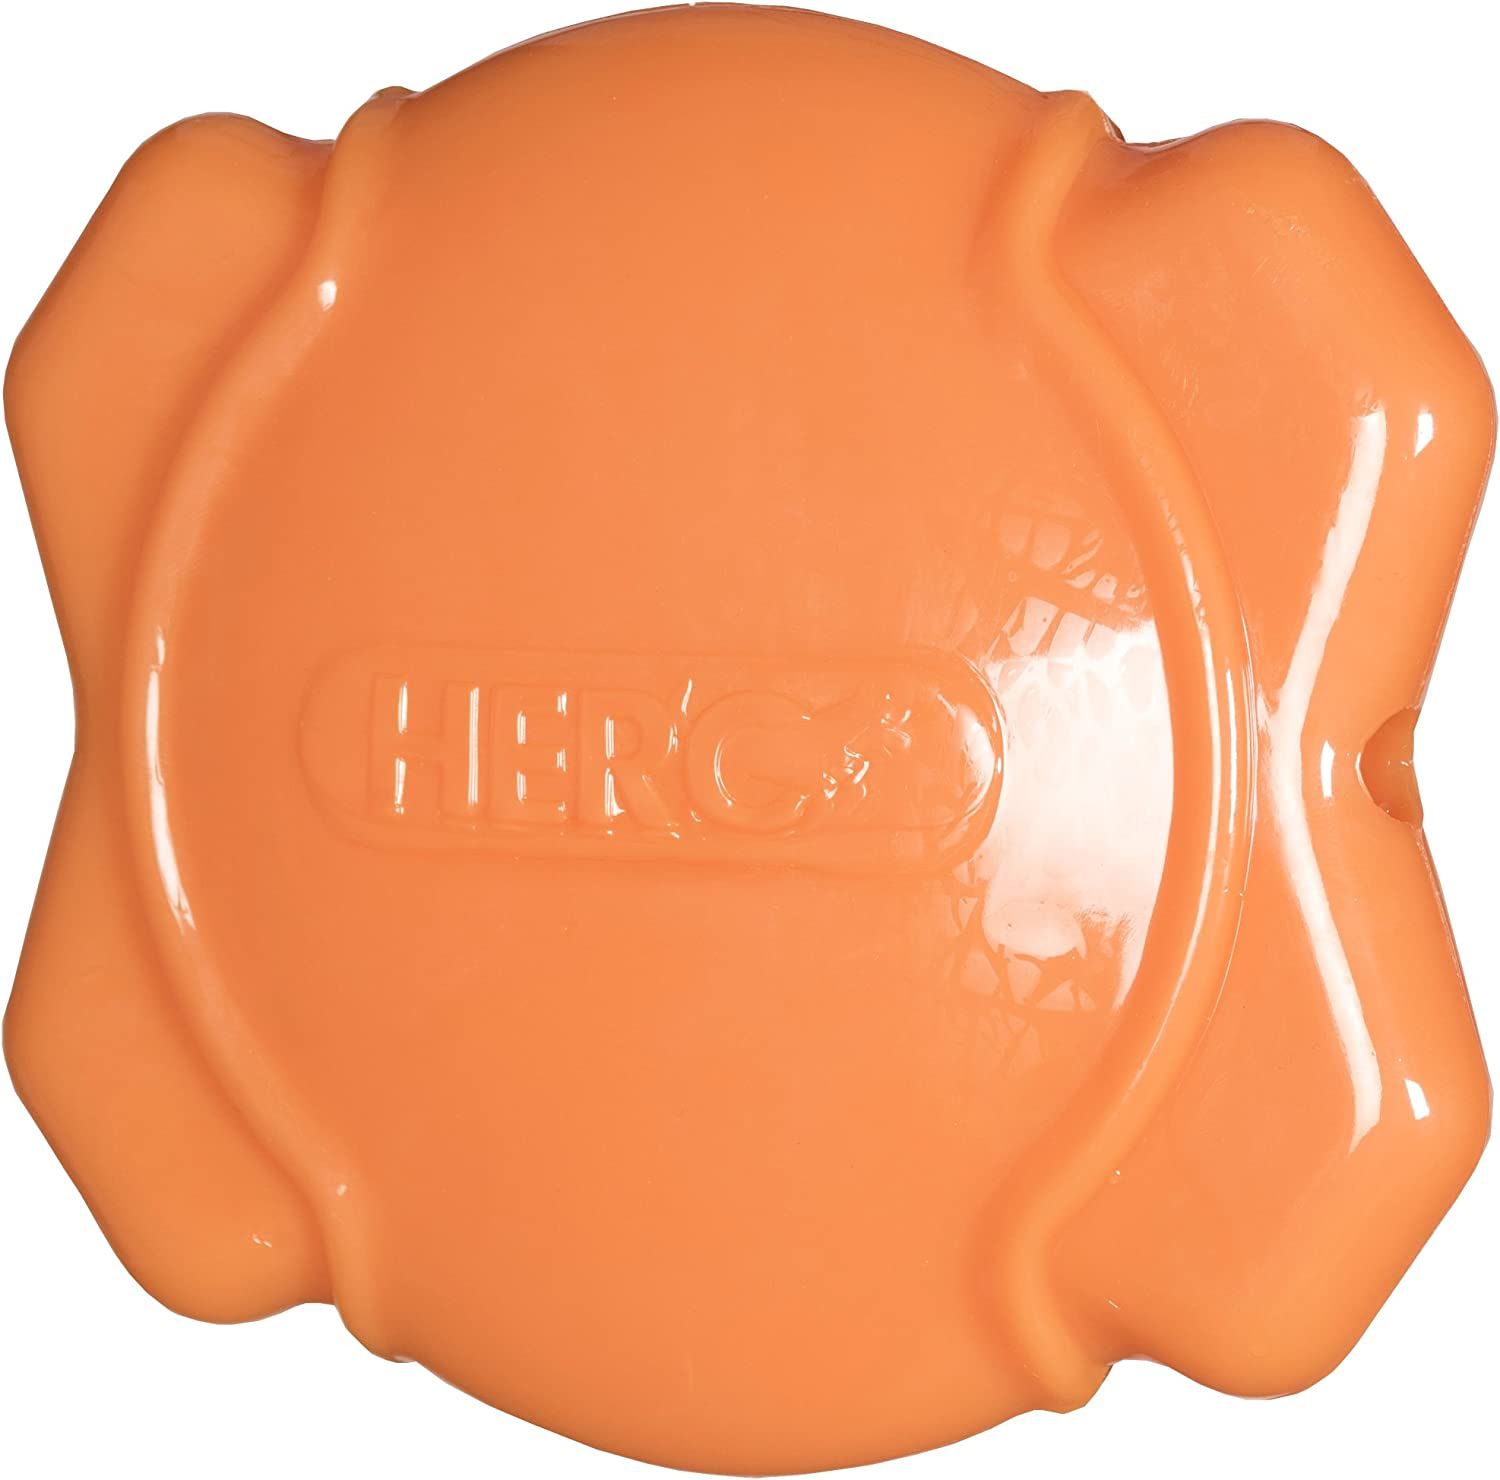 Hero Squeakables Soft Rubber Dog Toy Sale item Squeaker with Fun to Virginia Beach Mall Chew